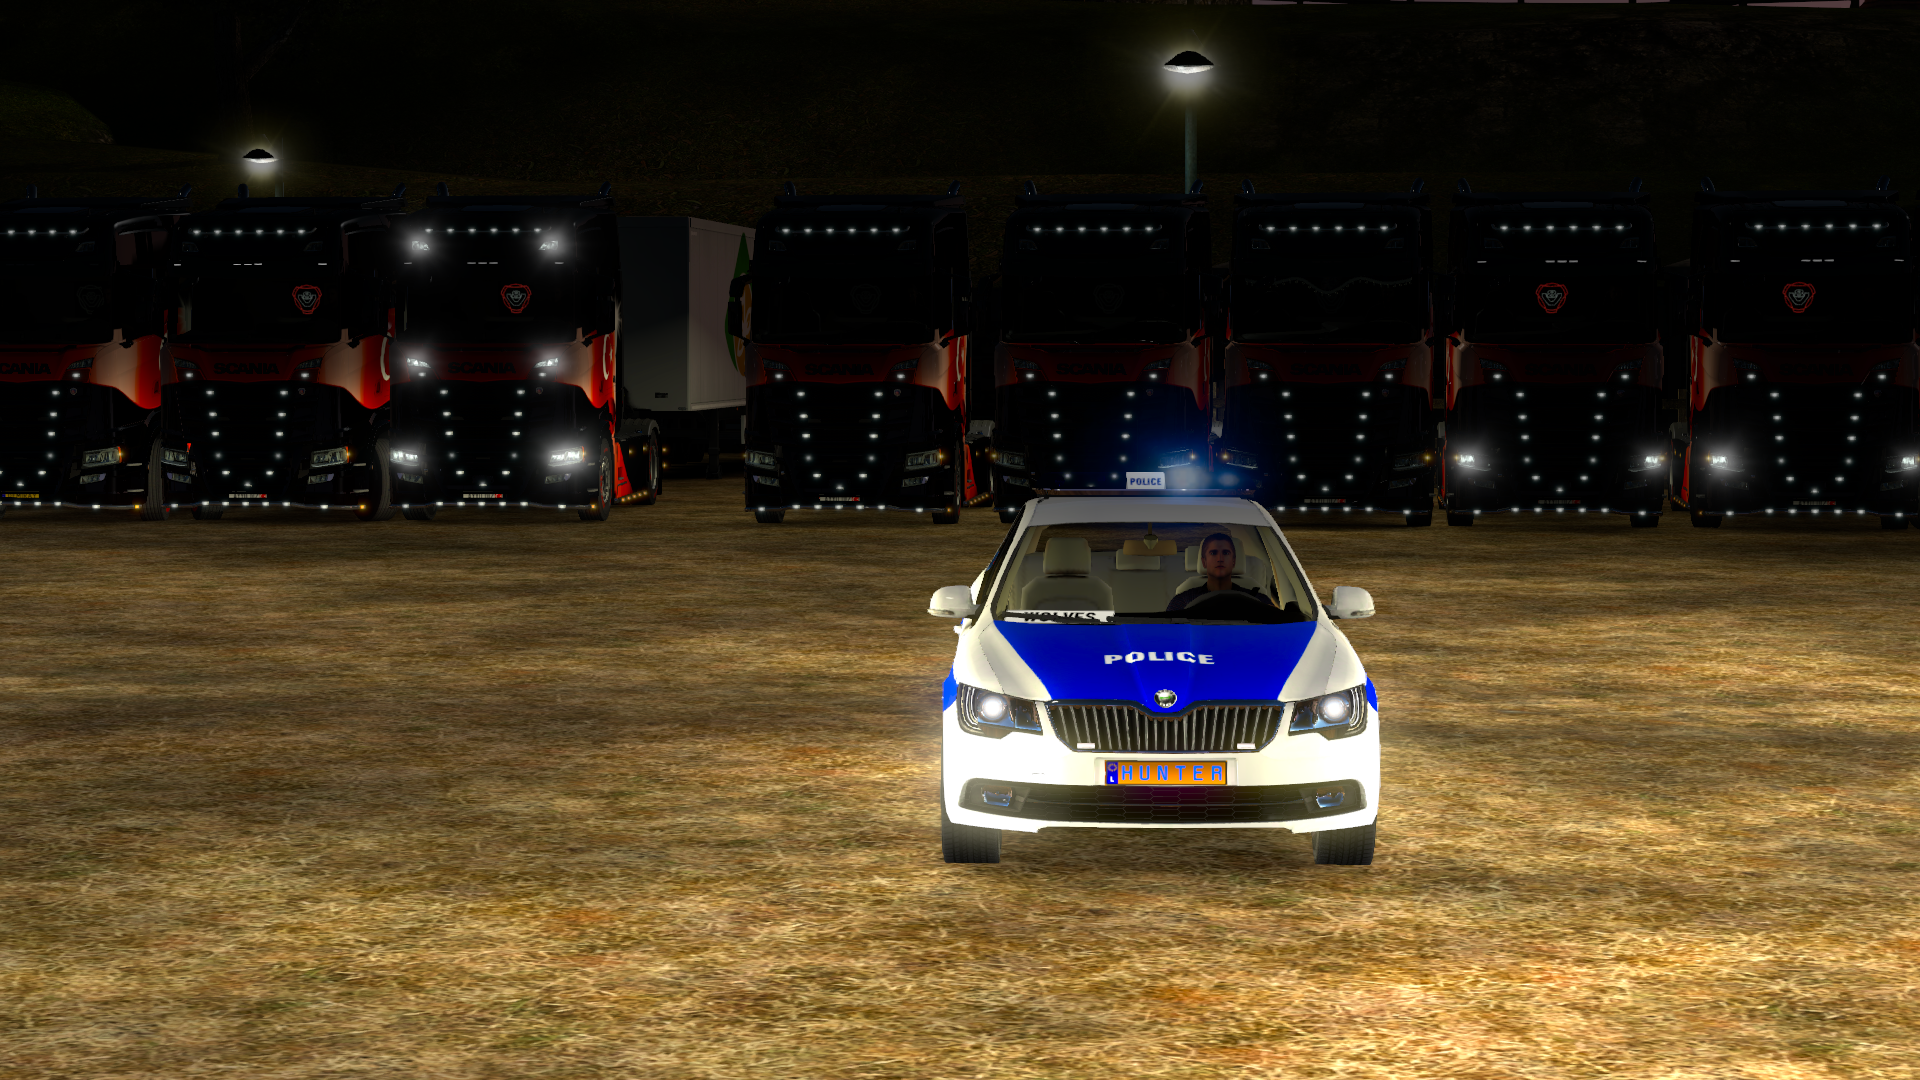 ets2_20190427_214029_00.png